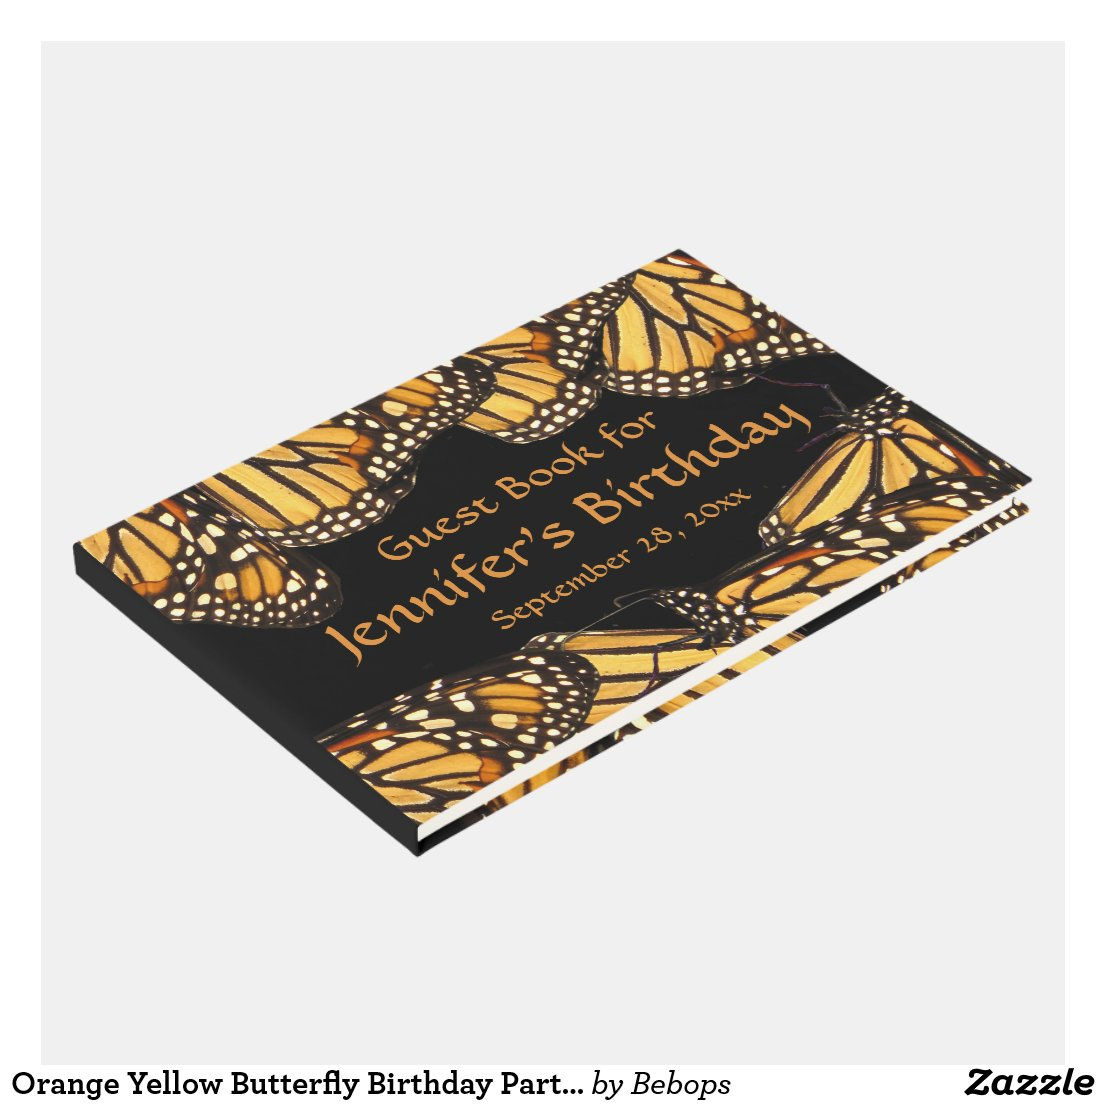 Orange Yellow Butterfly Birthday Party Guest Book